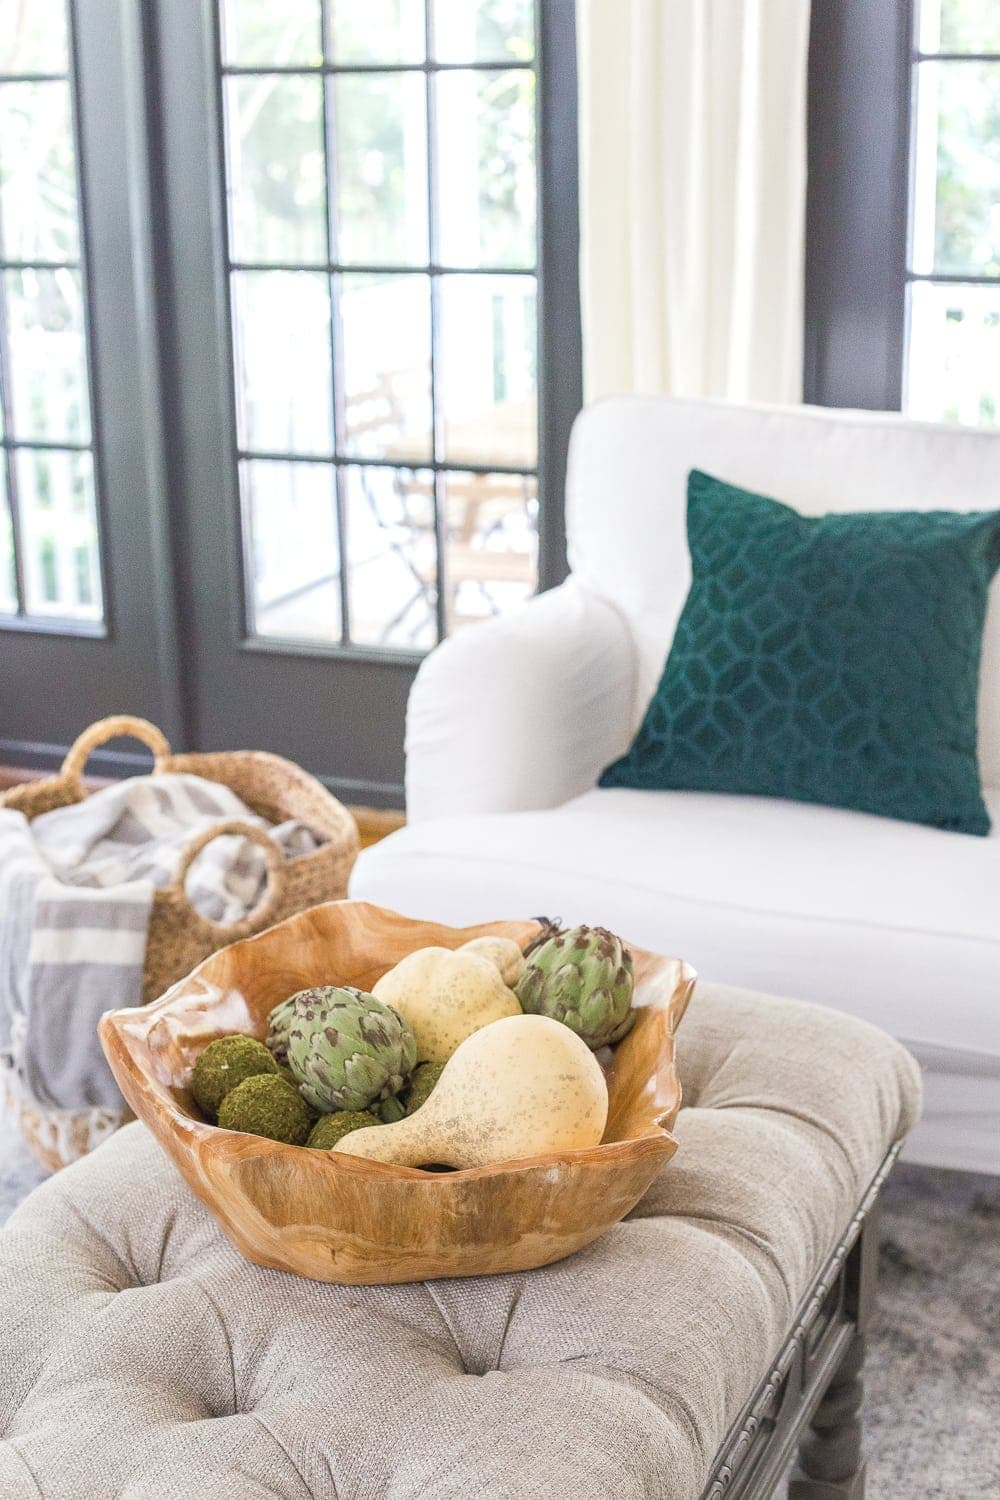 wooden bowl of gourds and artichokes on a living room coffee table